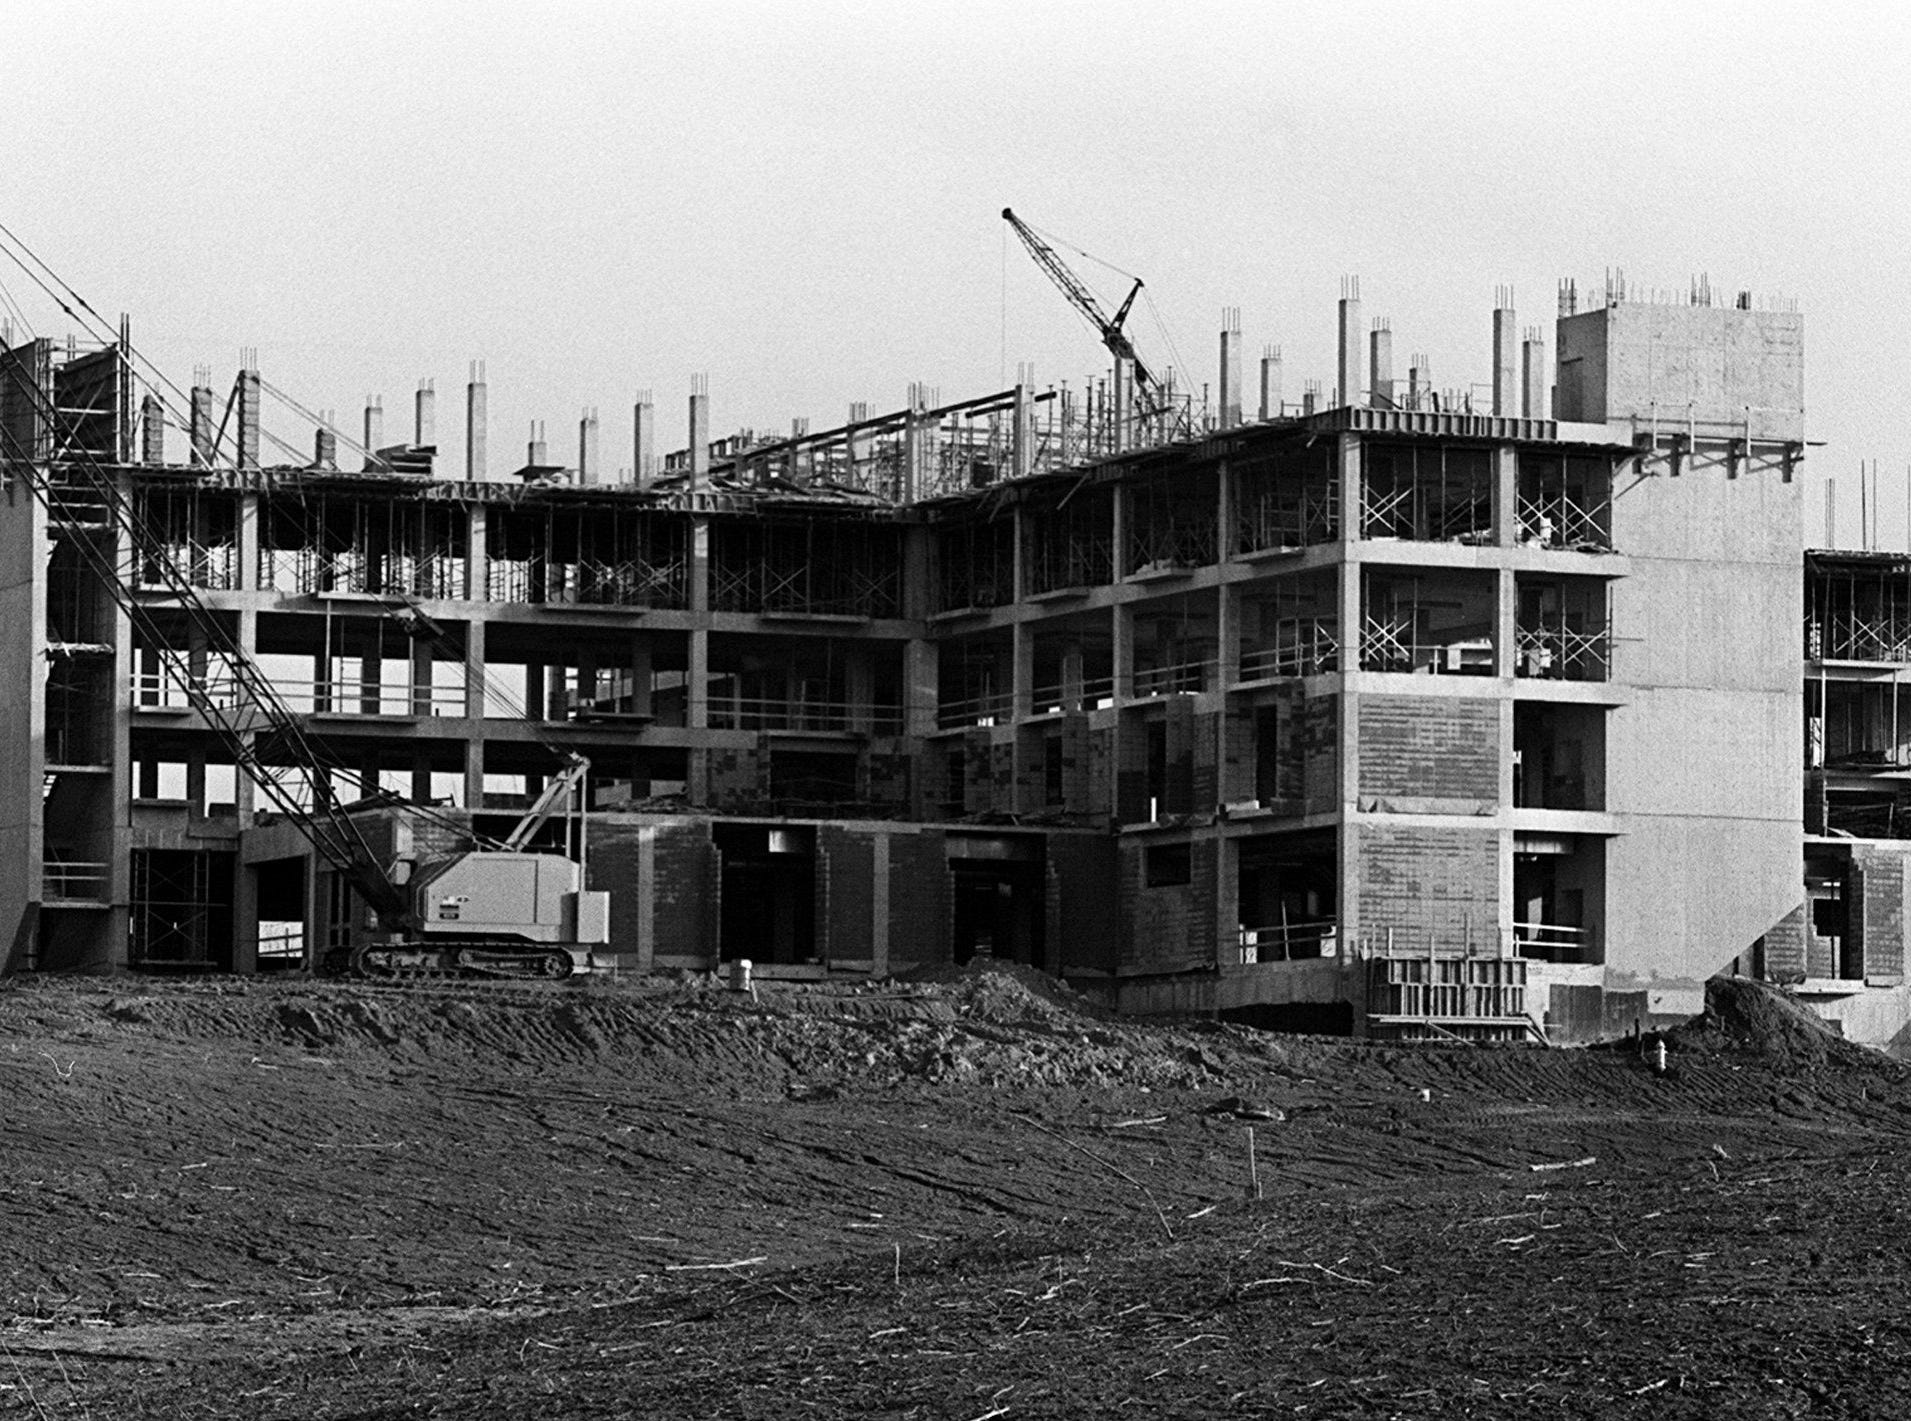 Methodist Hospital North is shaping up at 3960 Covington Pike on 4 March 1977. The hospital opened in July 1978.